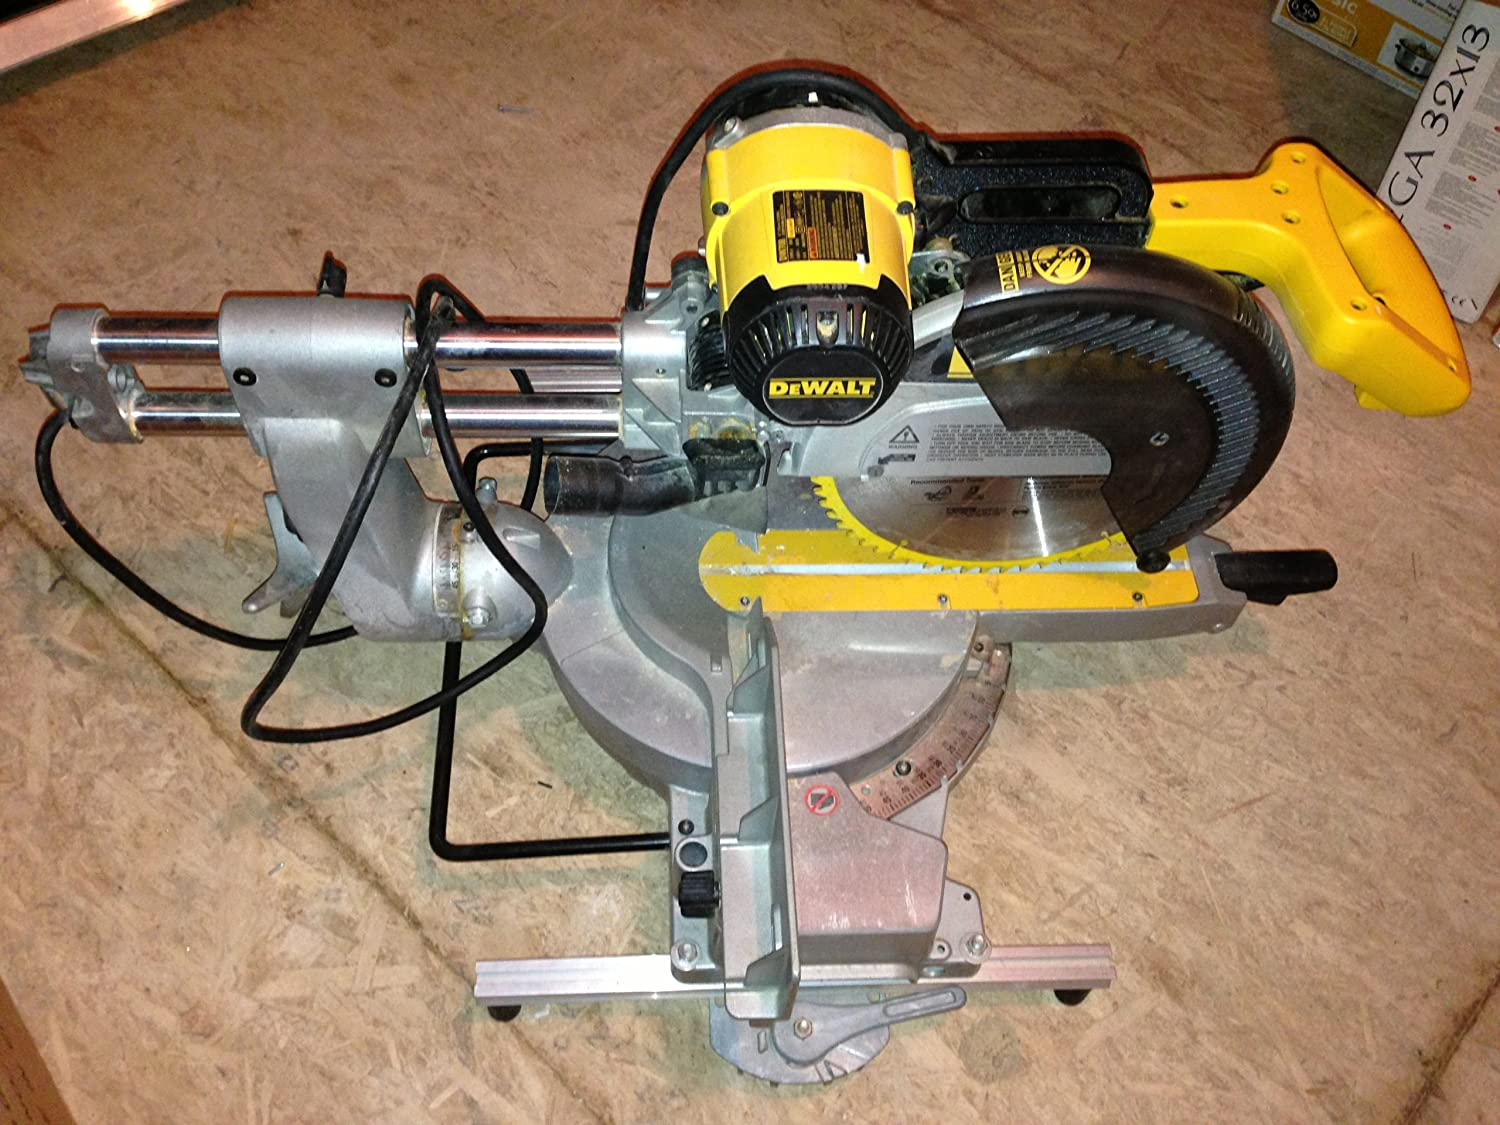 91Qvn4pRwXL._SL1500_ dewalt dw708 12 inch double bevel sliding compound miter saw Transformer Grounding Diagrams at bayanpartner.co